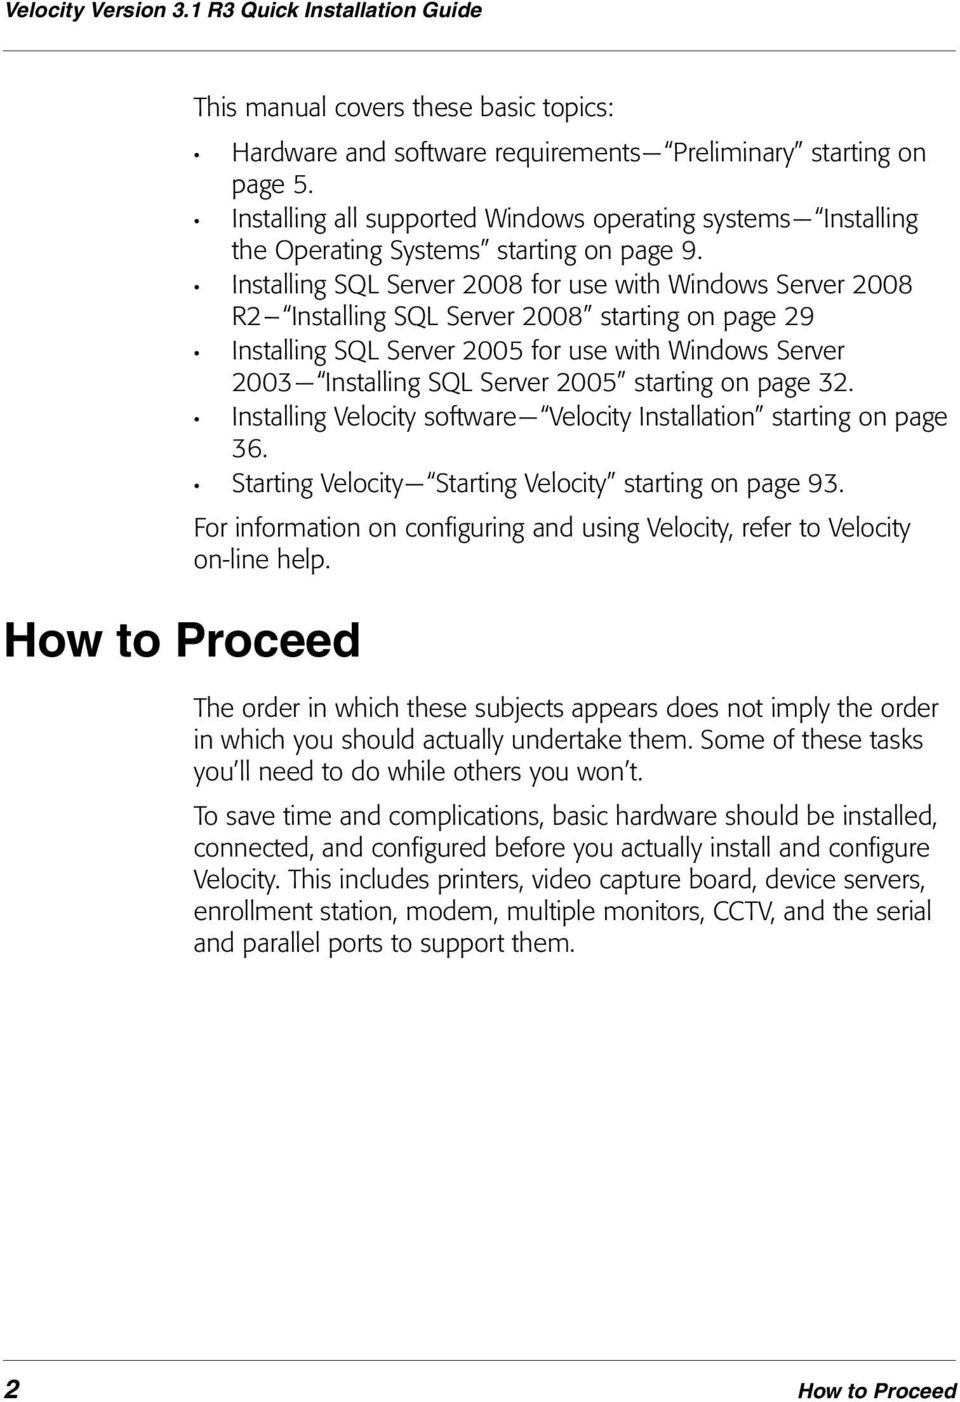 Installing SQL Server 2008 for use with Windows Server 2008 R2 Installing SQL Server 2008 starting on page 29 Installing SQL Server 2005 for use with Windows Server 2003 Installing SQL Server 2005